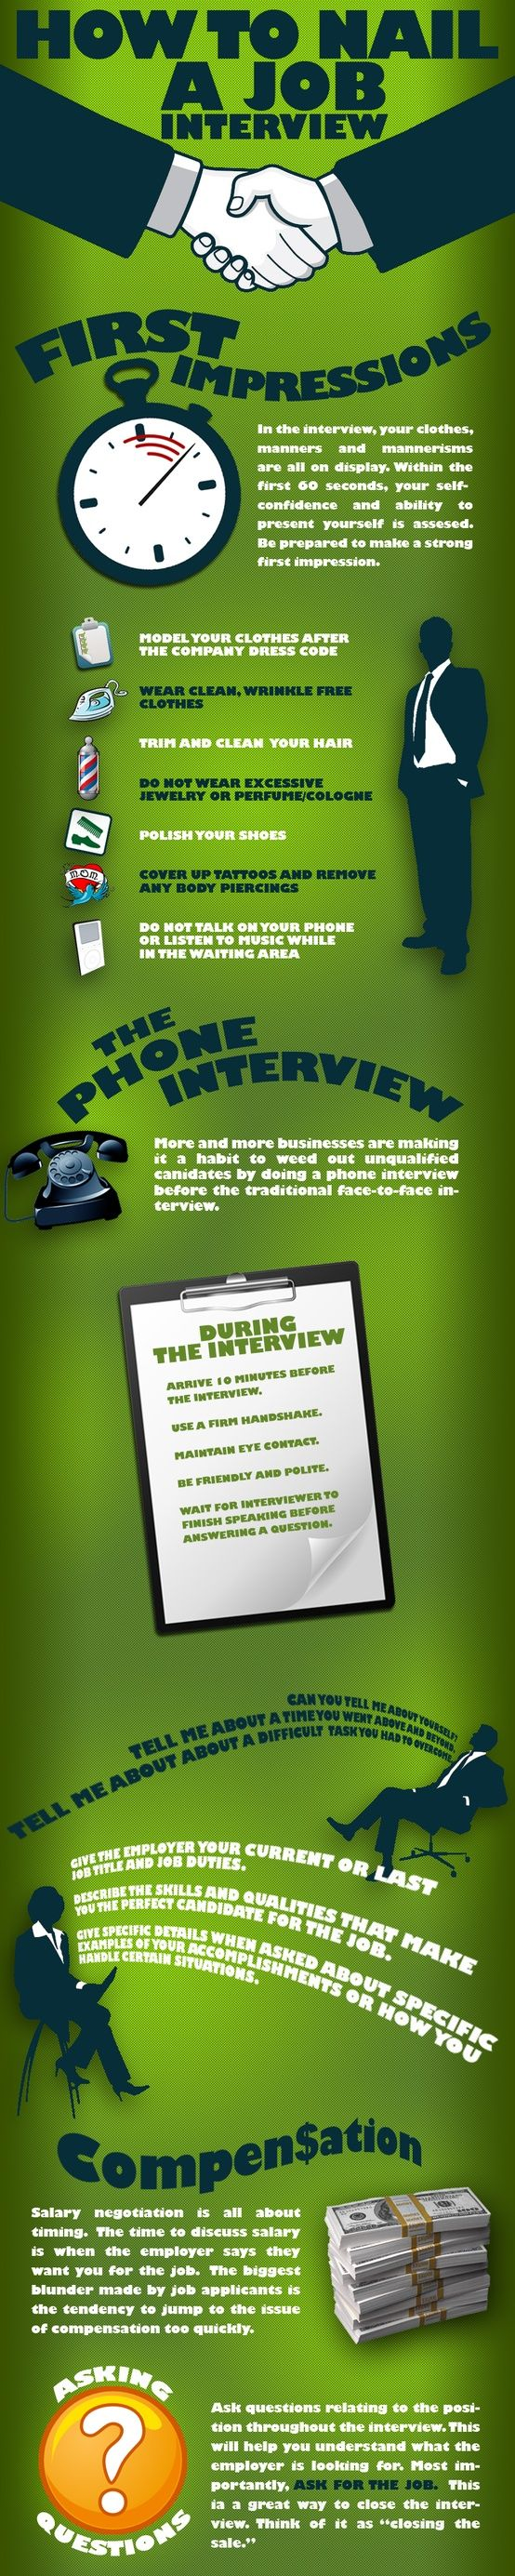 best job interview quotes interview job how to nail a job interview career jobinterview profiliacv cvmontreal